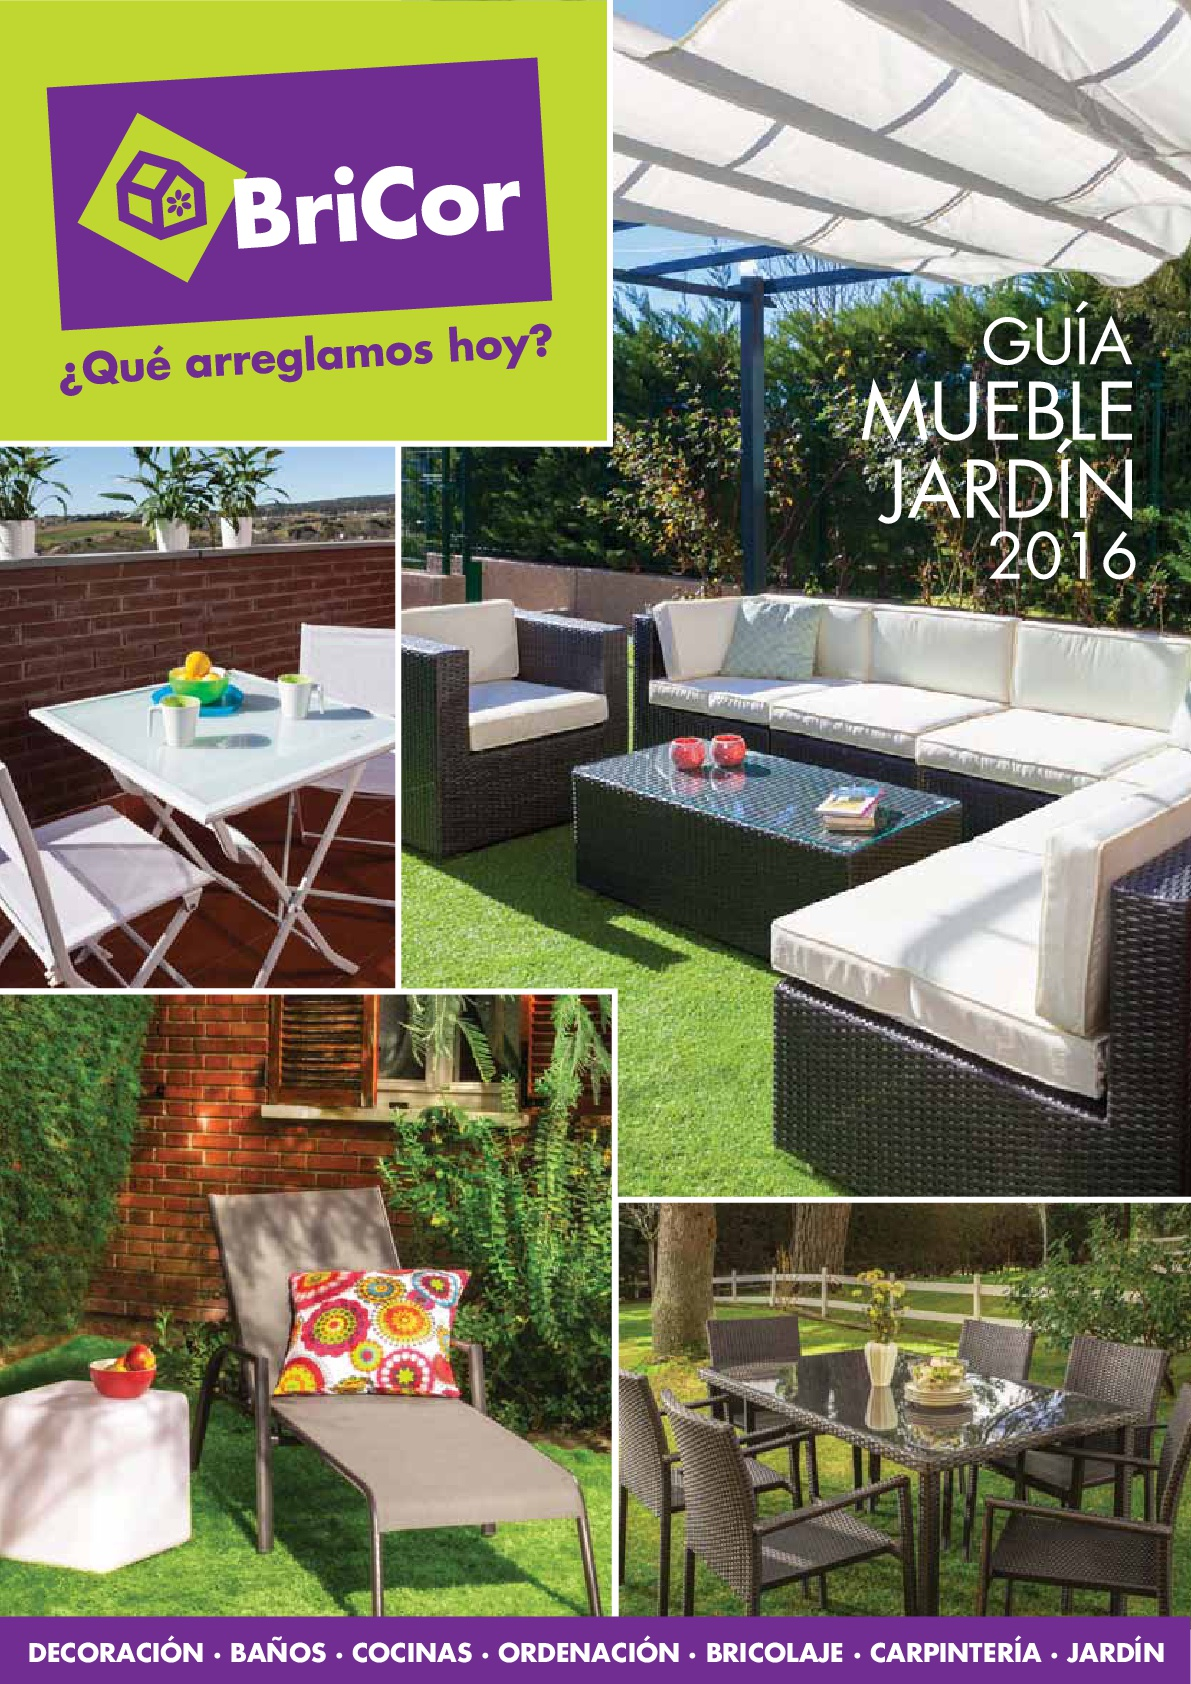 Bricor muebles jardin 20161 revista muebles mobiliario for Revista jardin 2016